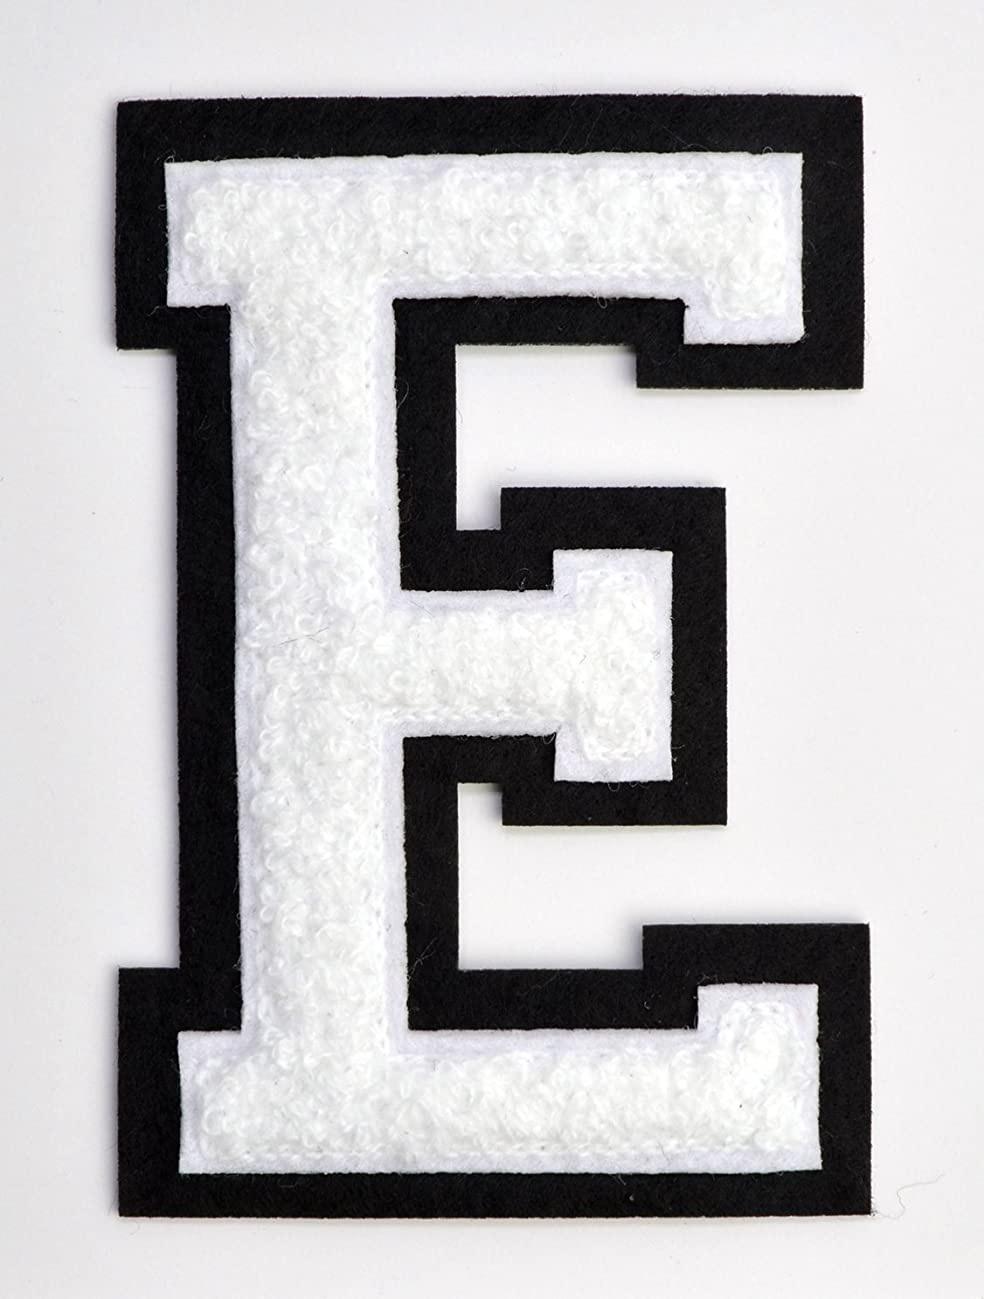 Varsity Letter Patches - White Embroidered Chenille Letterman Patch - 4 1/2 inch Iron-On Letter Initials (White, Letter E Patch)